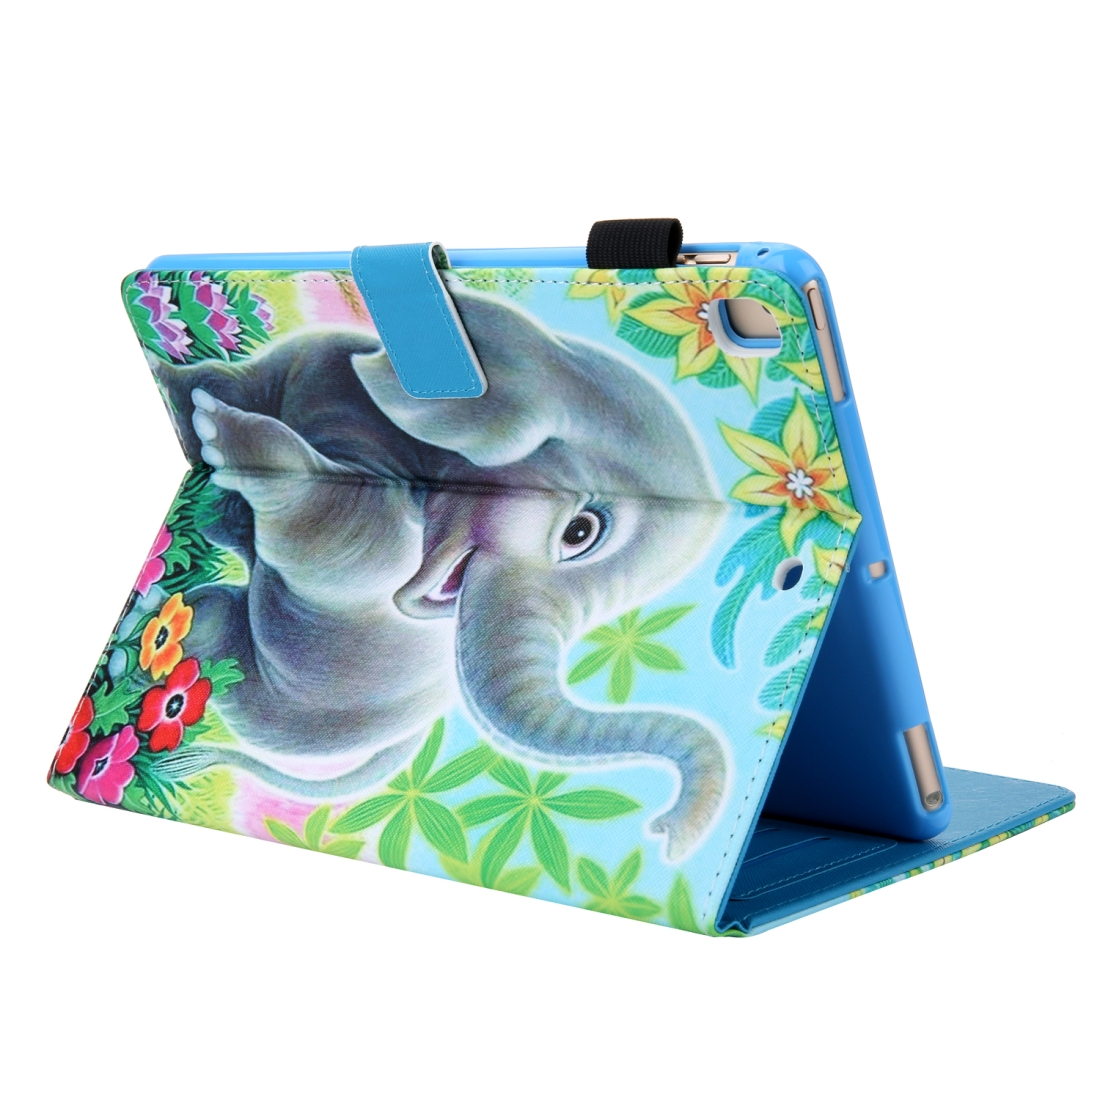 iPad 10.5 Case Colorful Design Leather Case with Sleeve (Elephant)